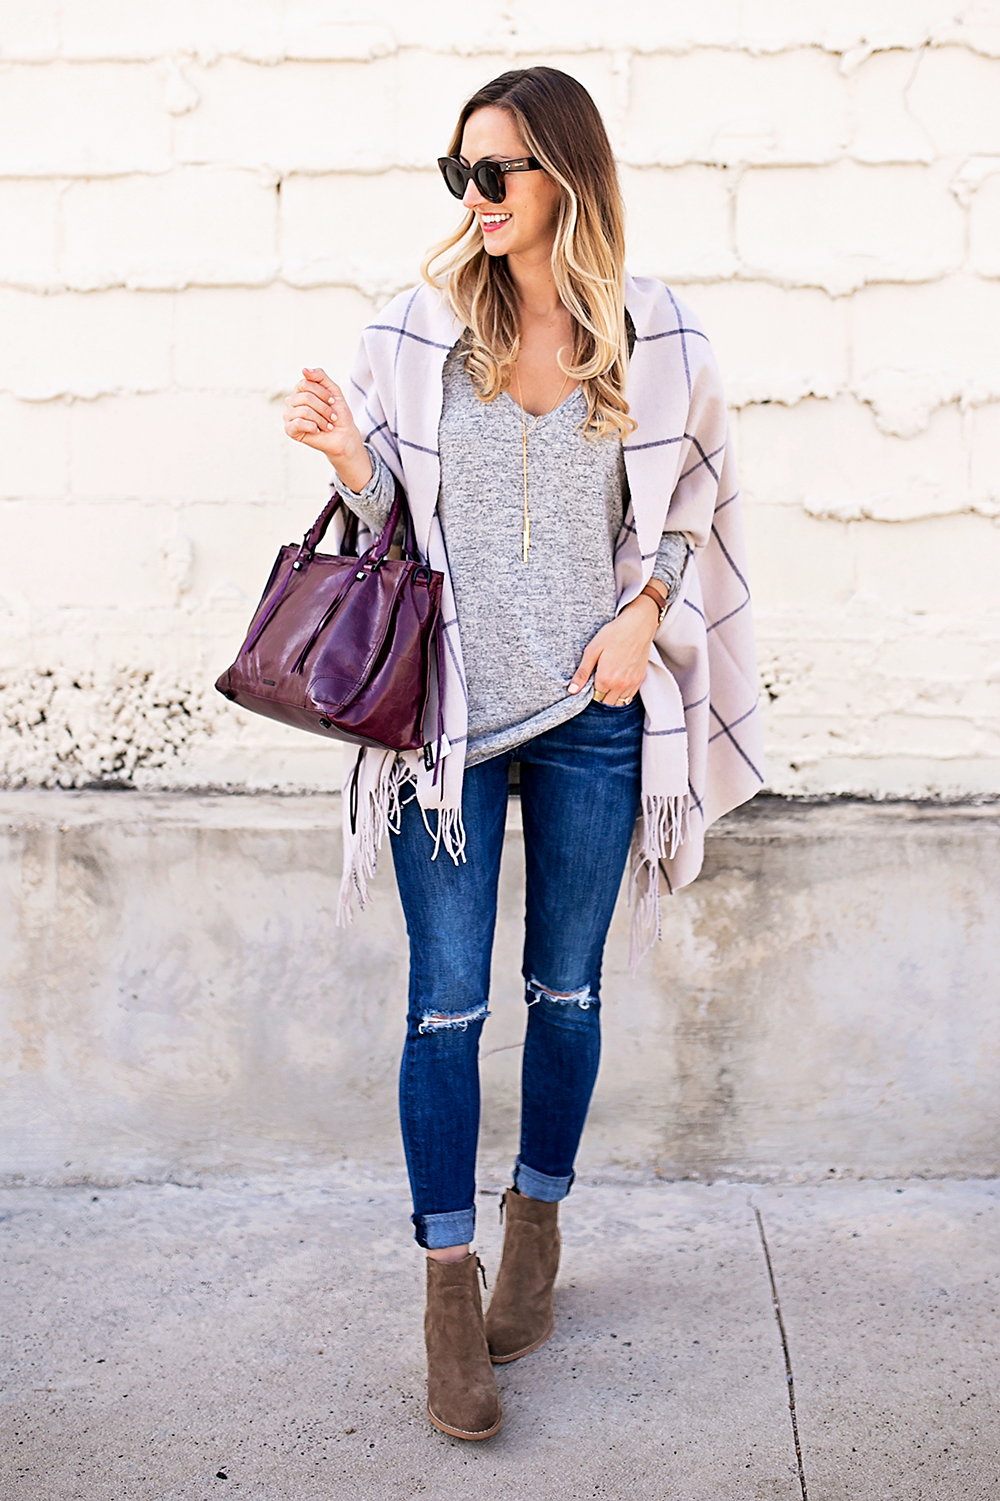 livvyland-blog-olivia-watson-nordstrom-fall-outfit-grey-sweater-booties-madewell-plaid-poncho-rebecca-minkoff-regan-satchel-burgundy-oxblood-7